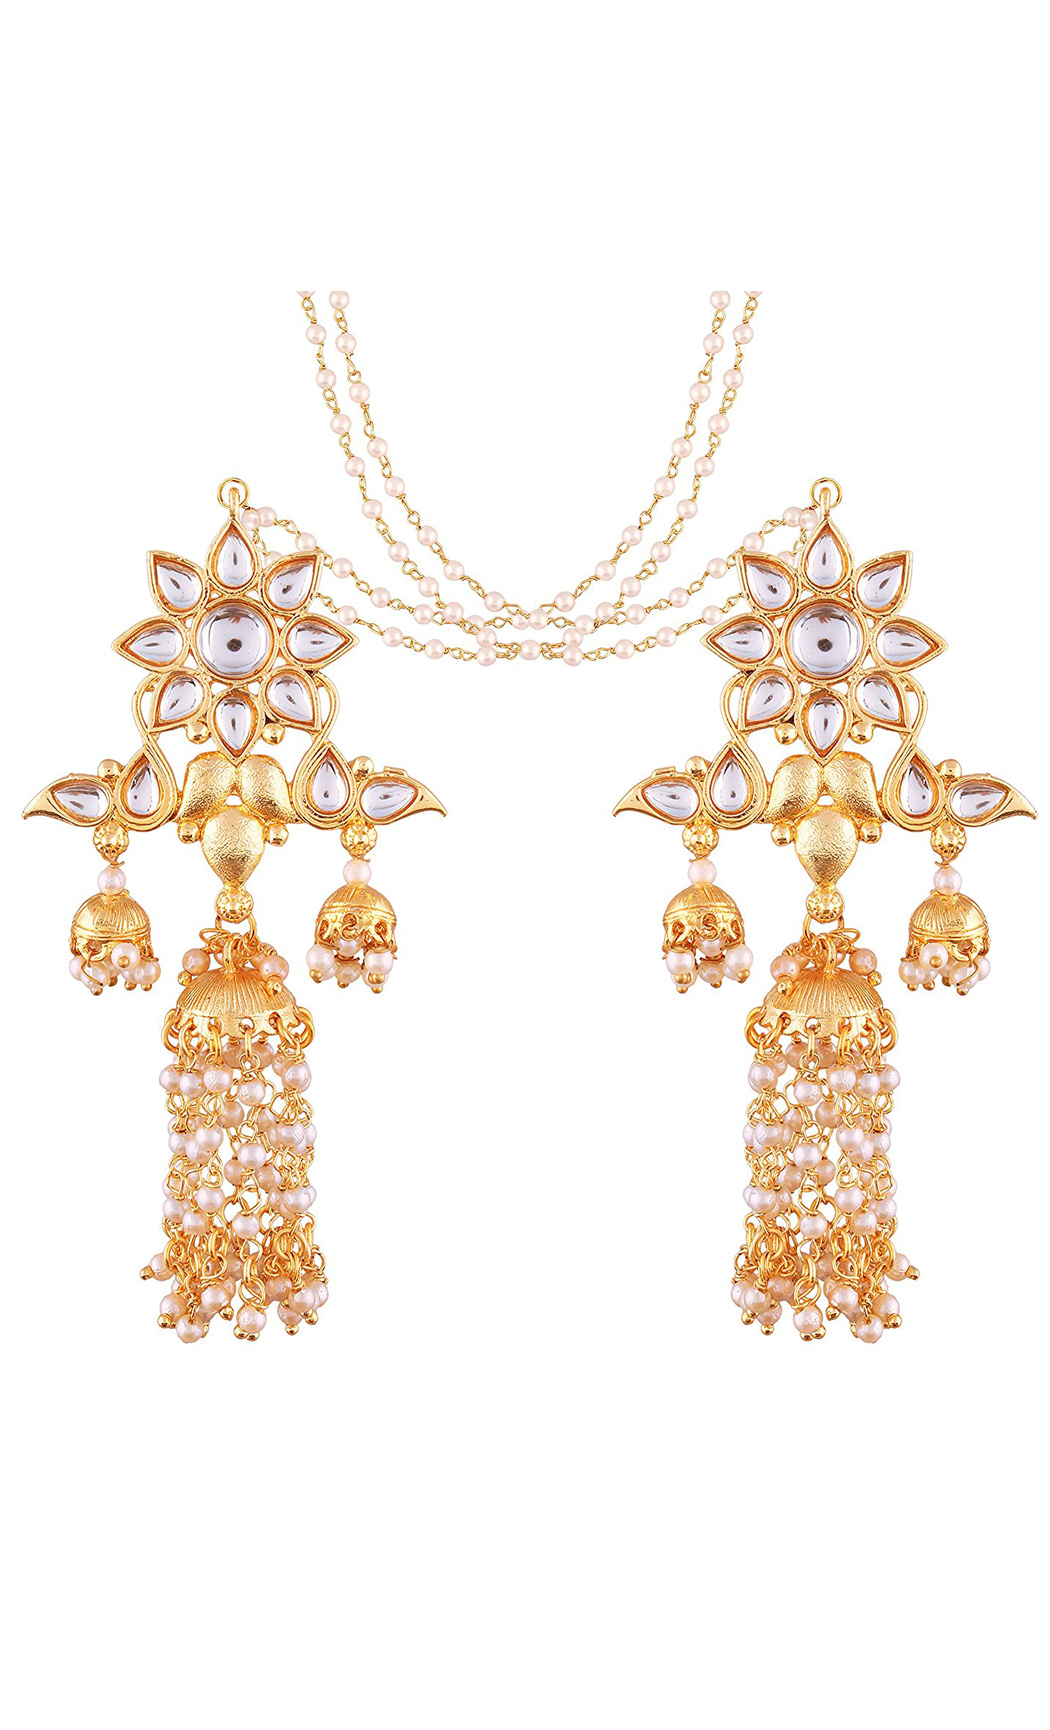 Long Kundan and Pearl Earrings with Hair Chains - Shop Online